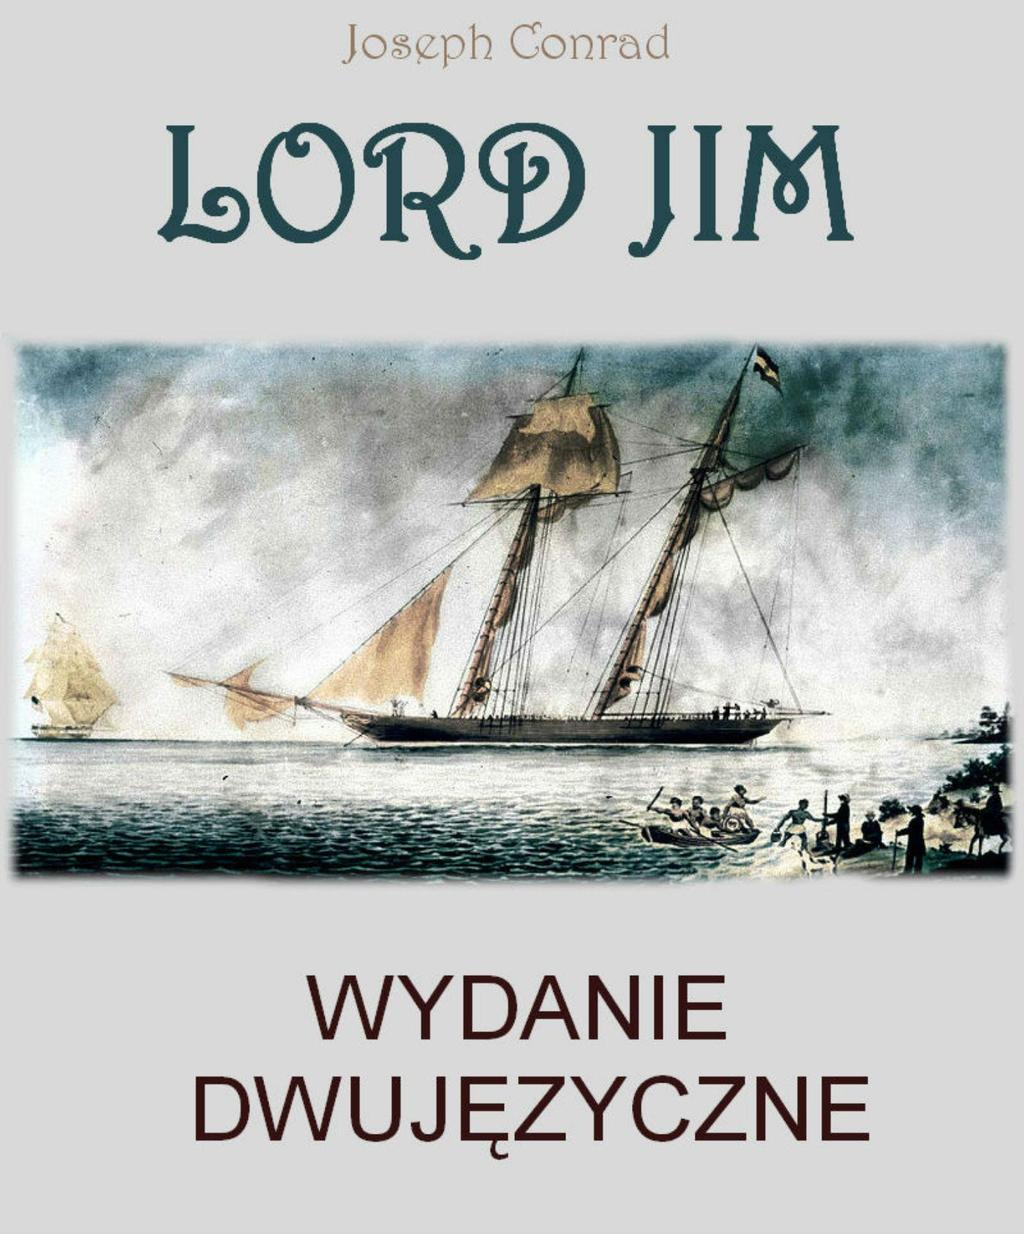 The notions of perfection in the novel lord jim by joseph conrad